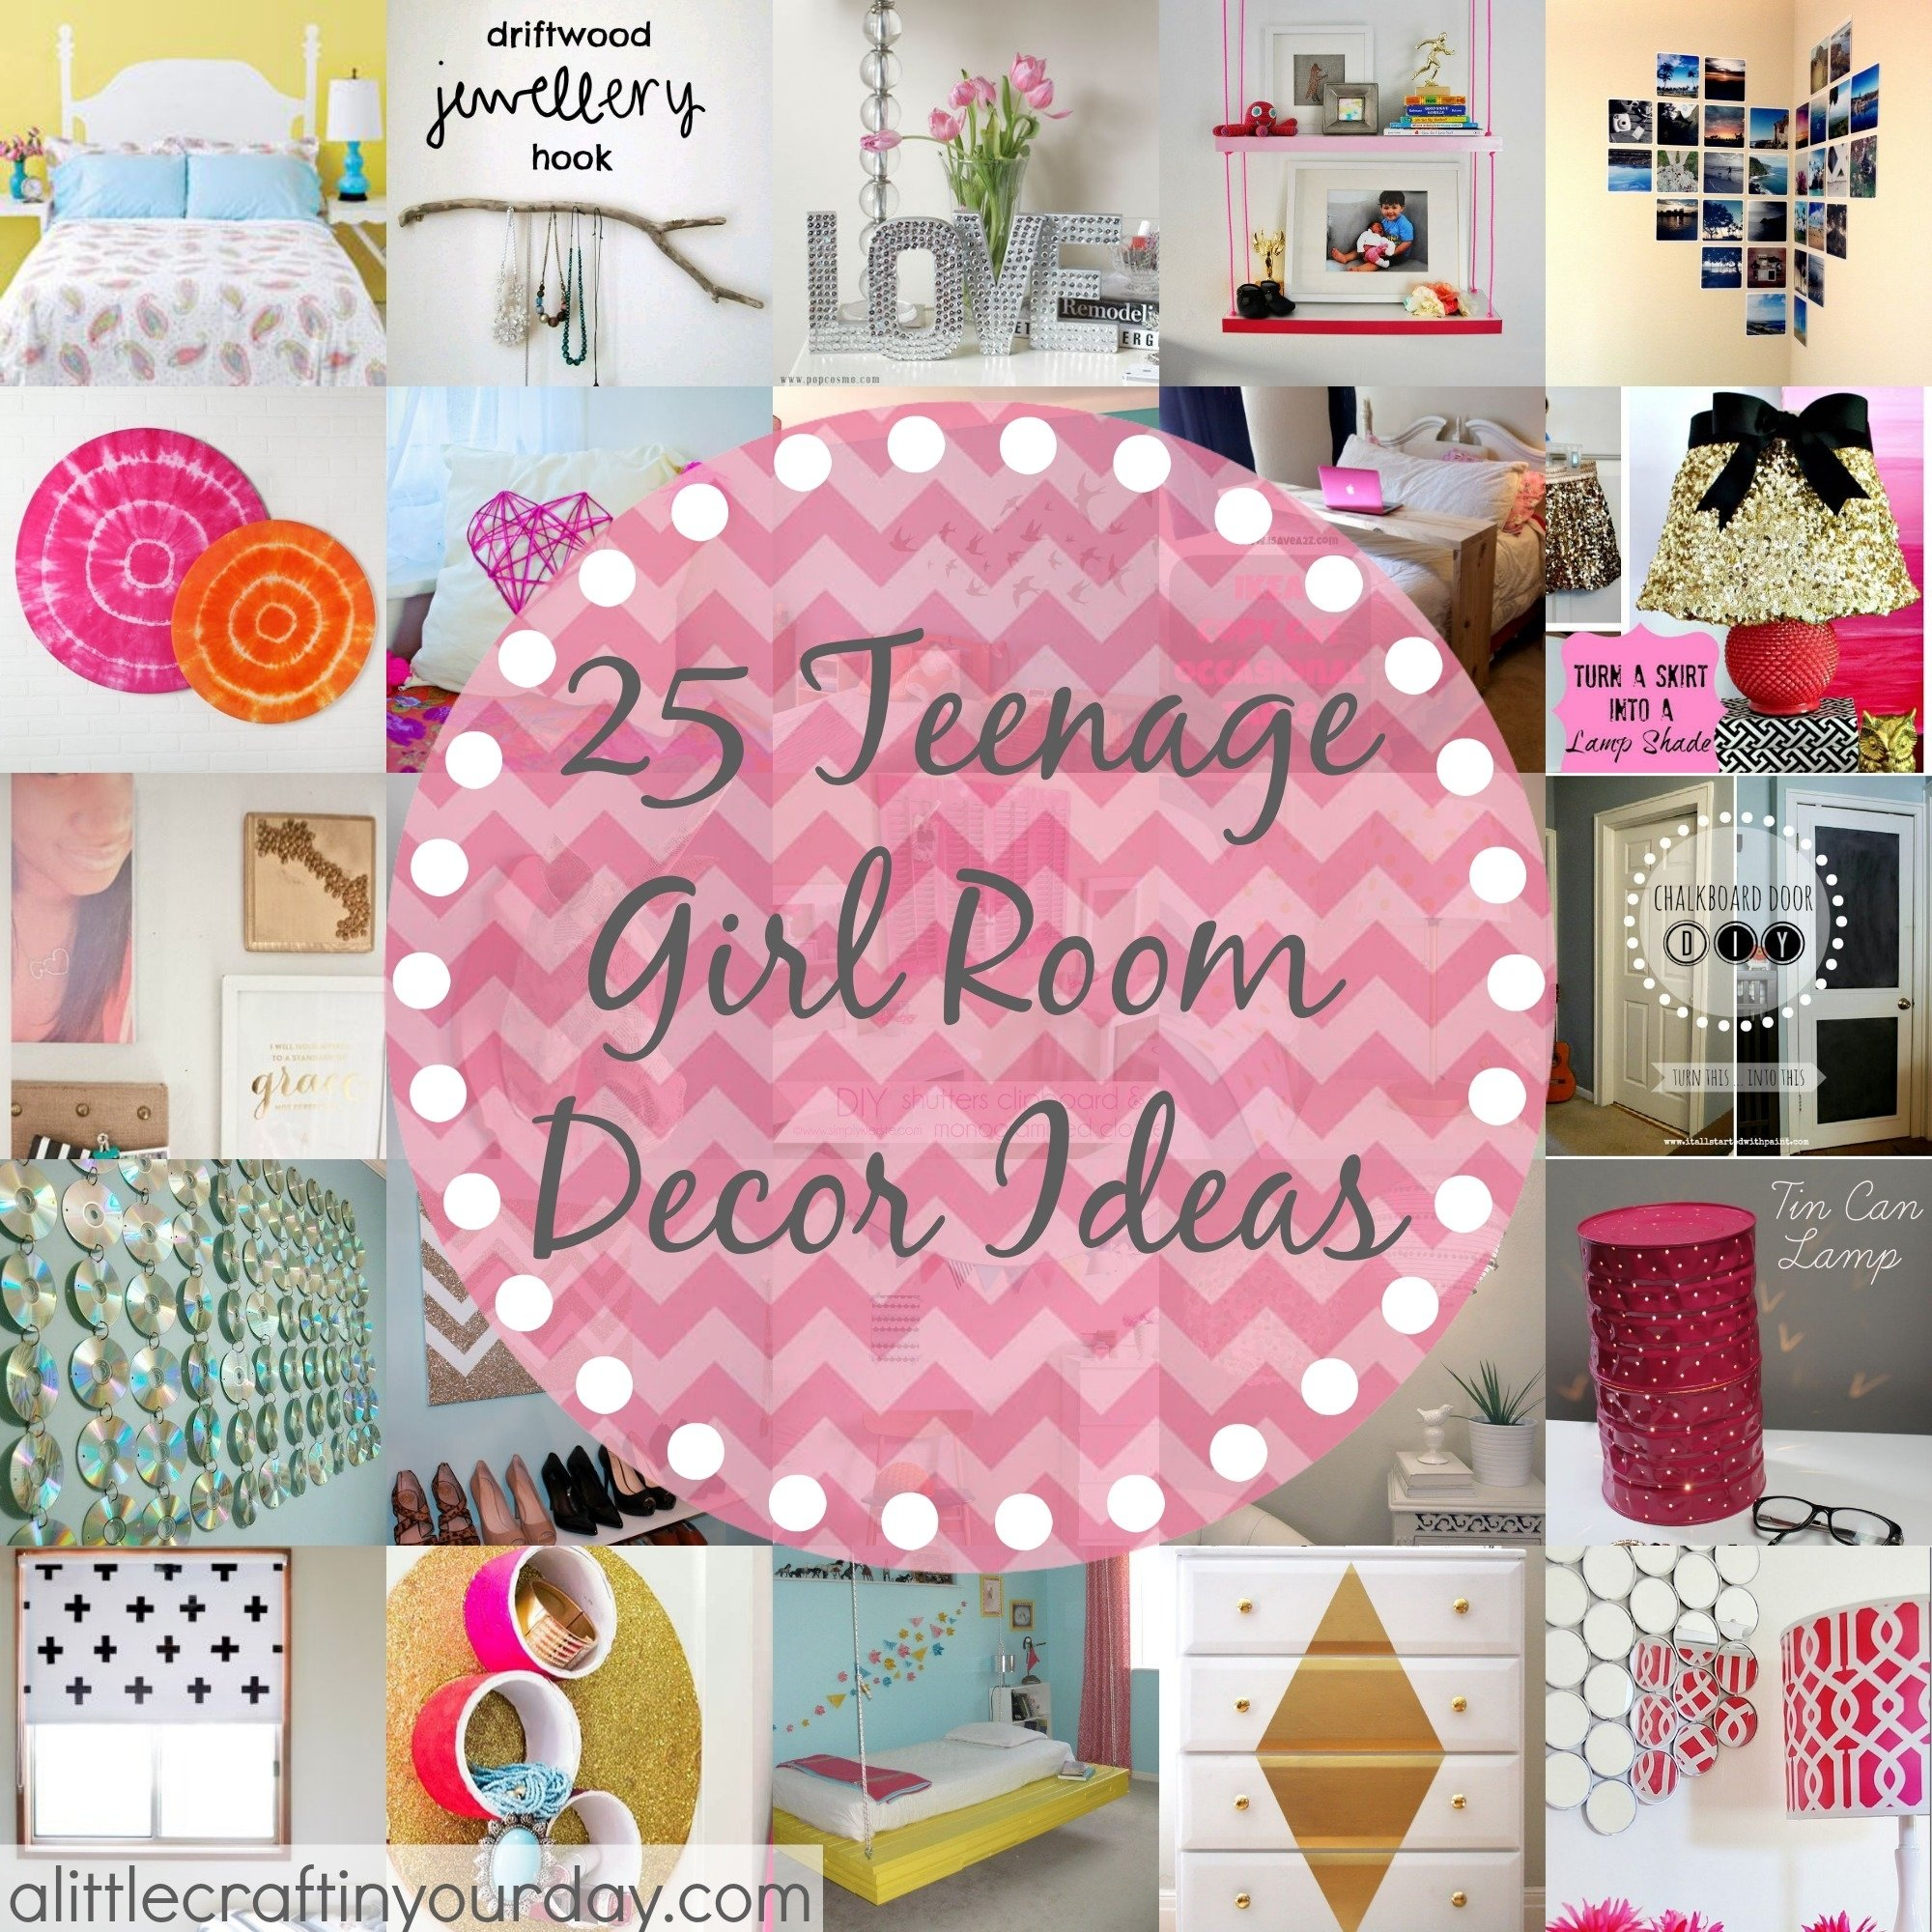 10 Pretty Craft Ideas For Teenage Girls 25 more teenage girl room decor ideas a little craft in your day 1 2020